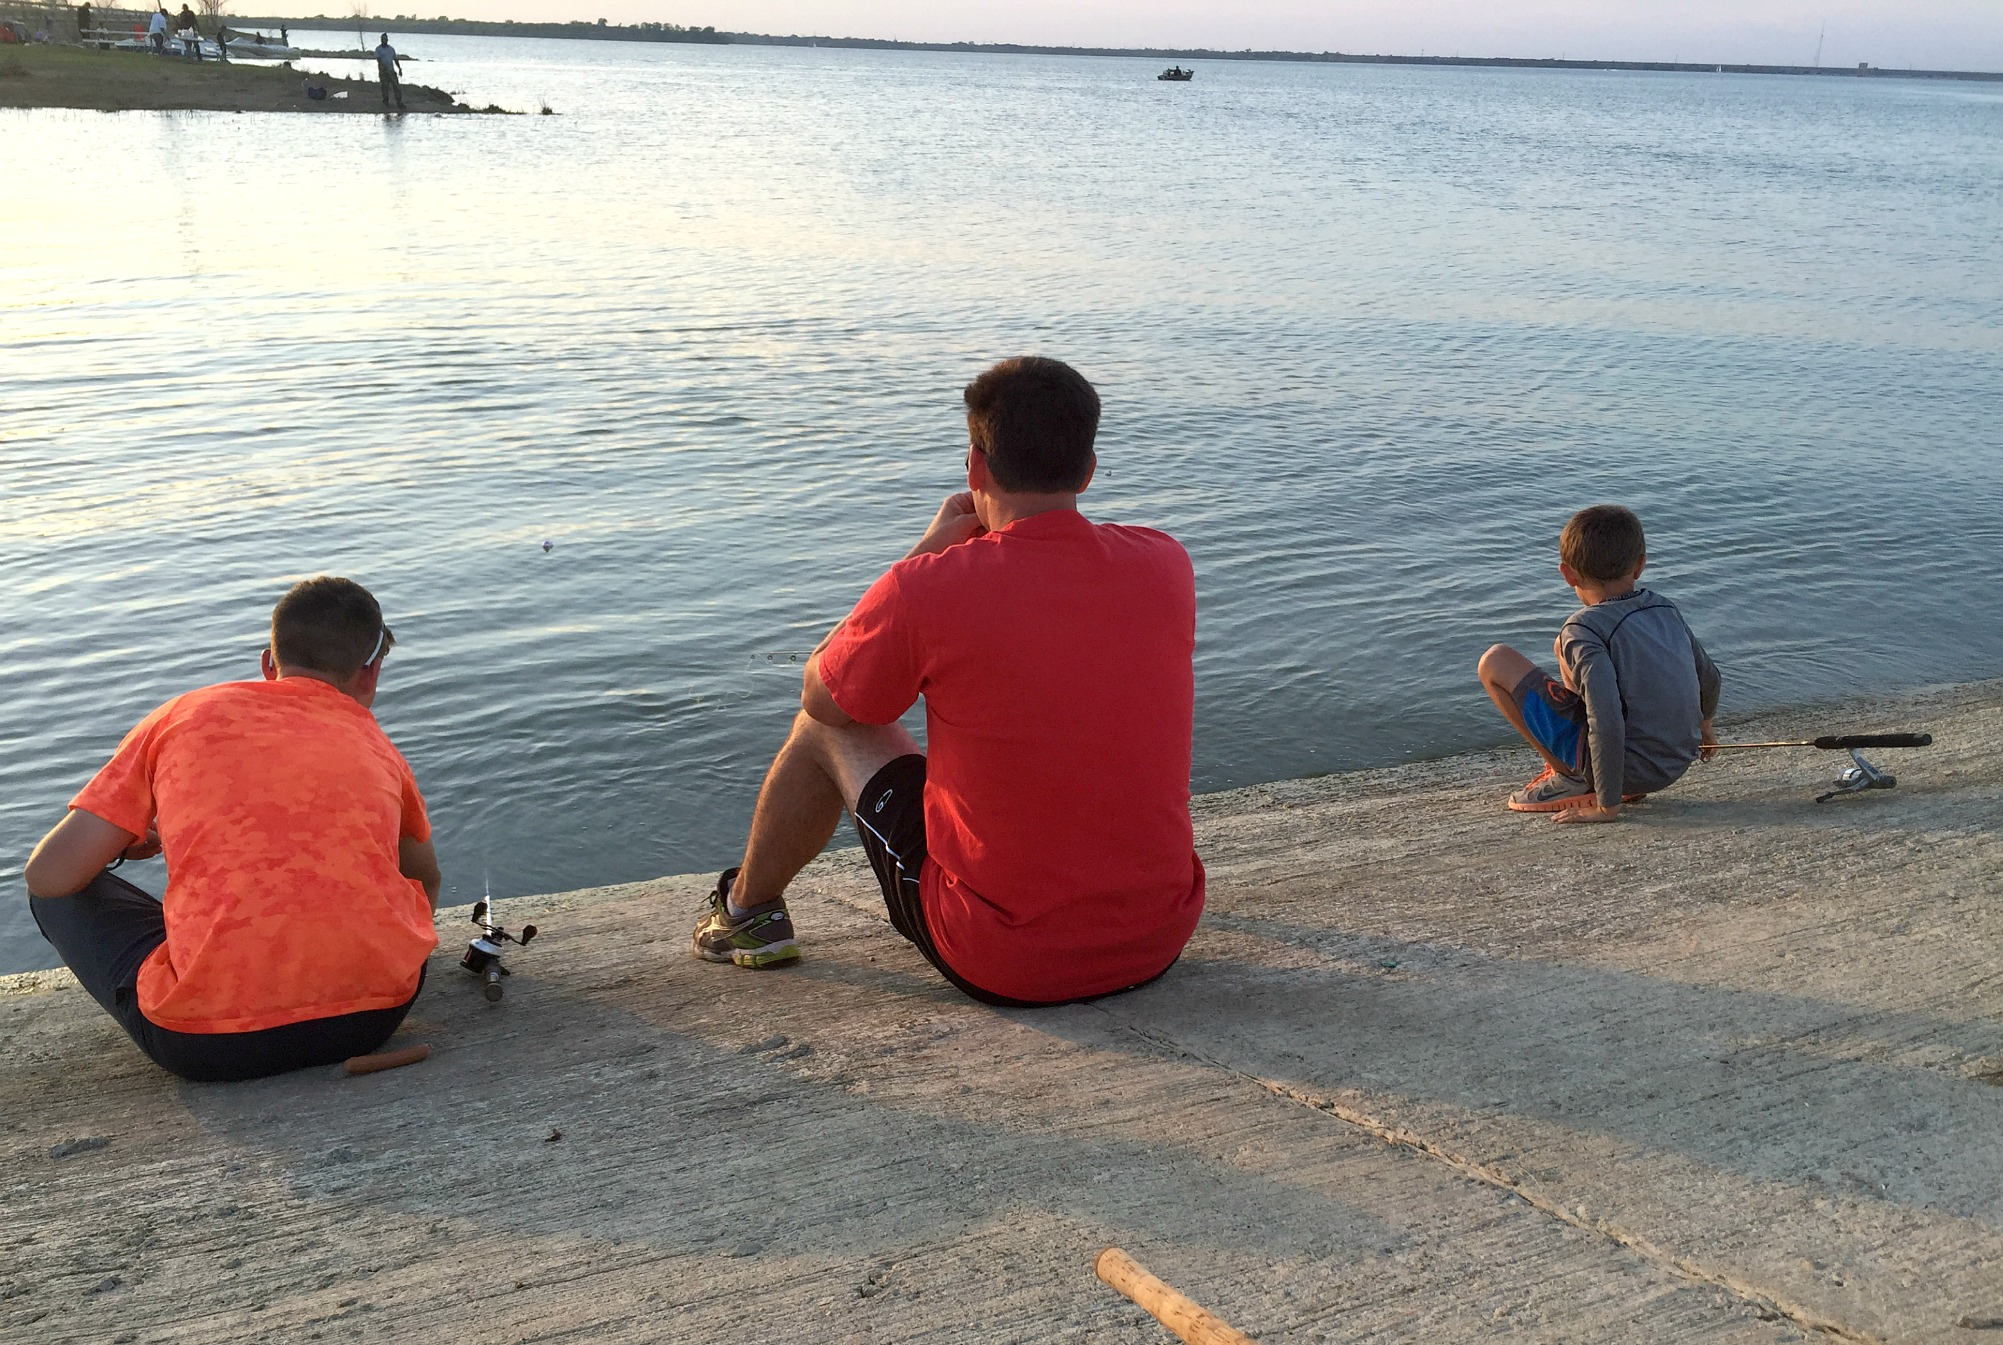 father and son bonding over fishing